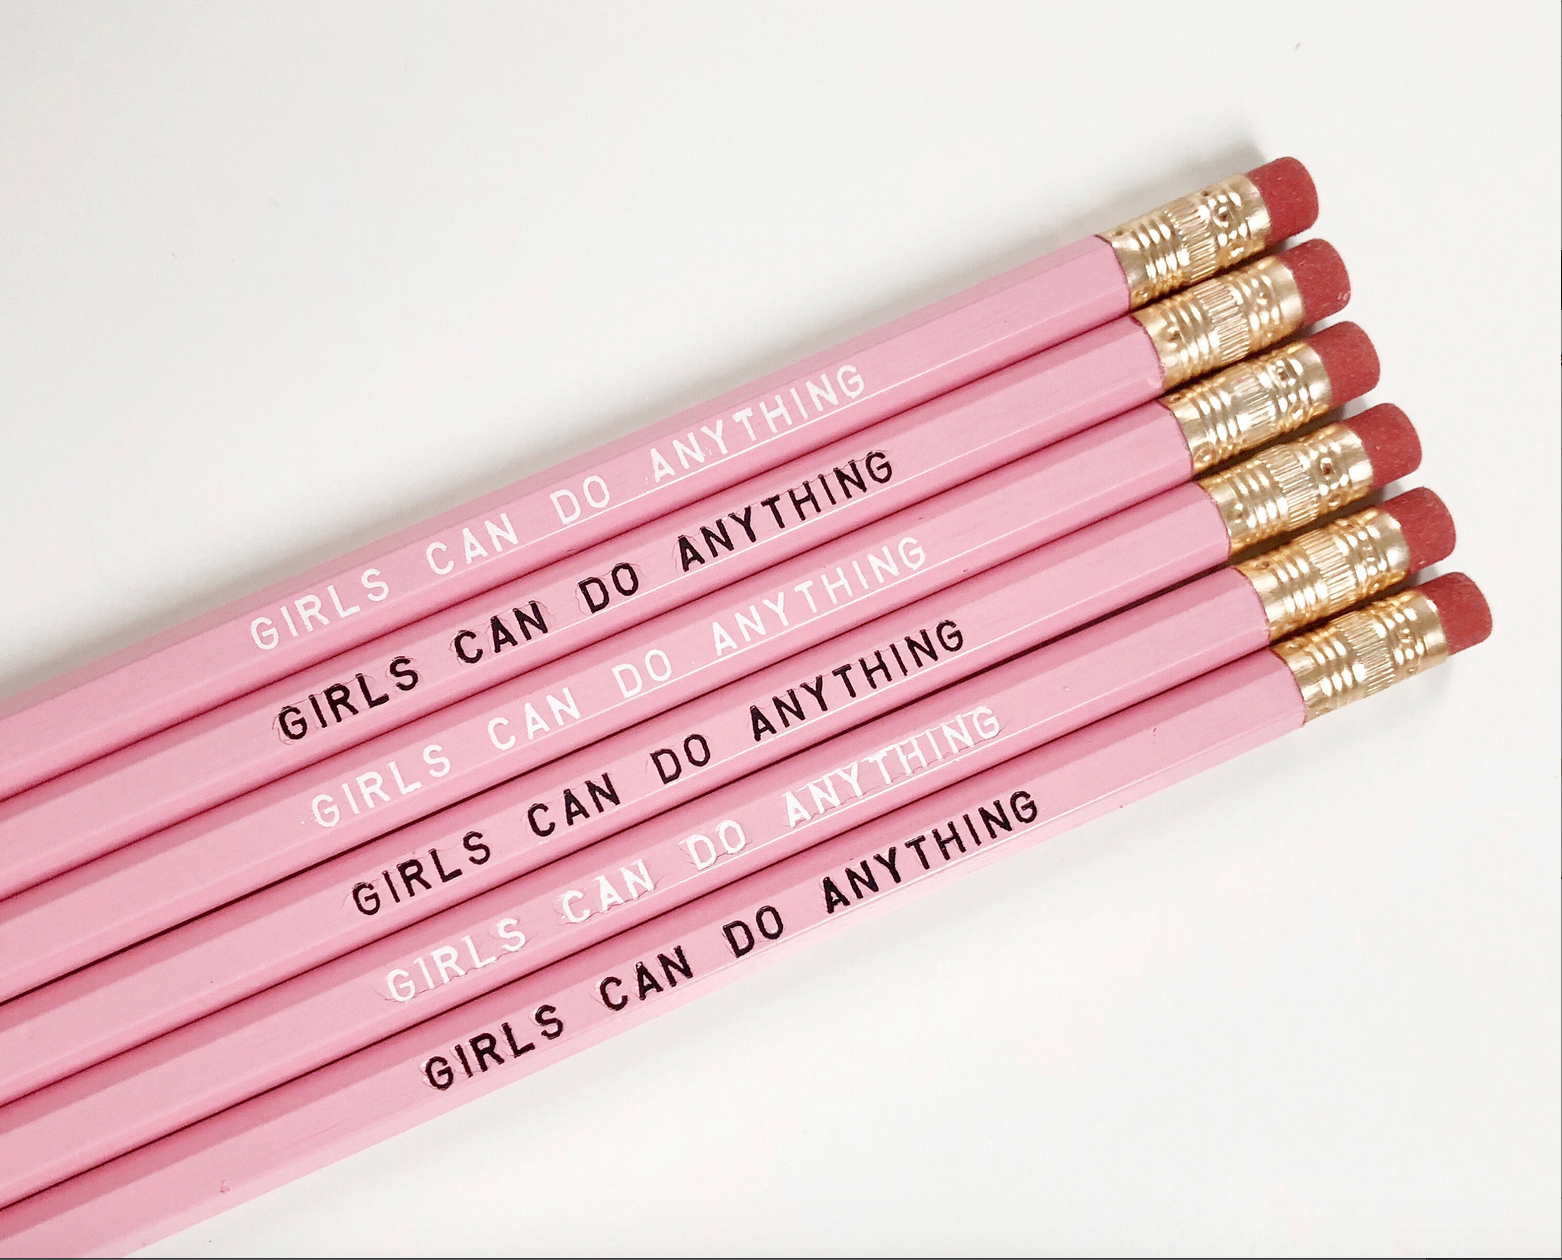 Girls Can Do Anything Pencils